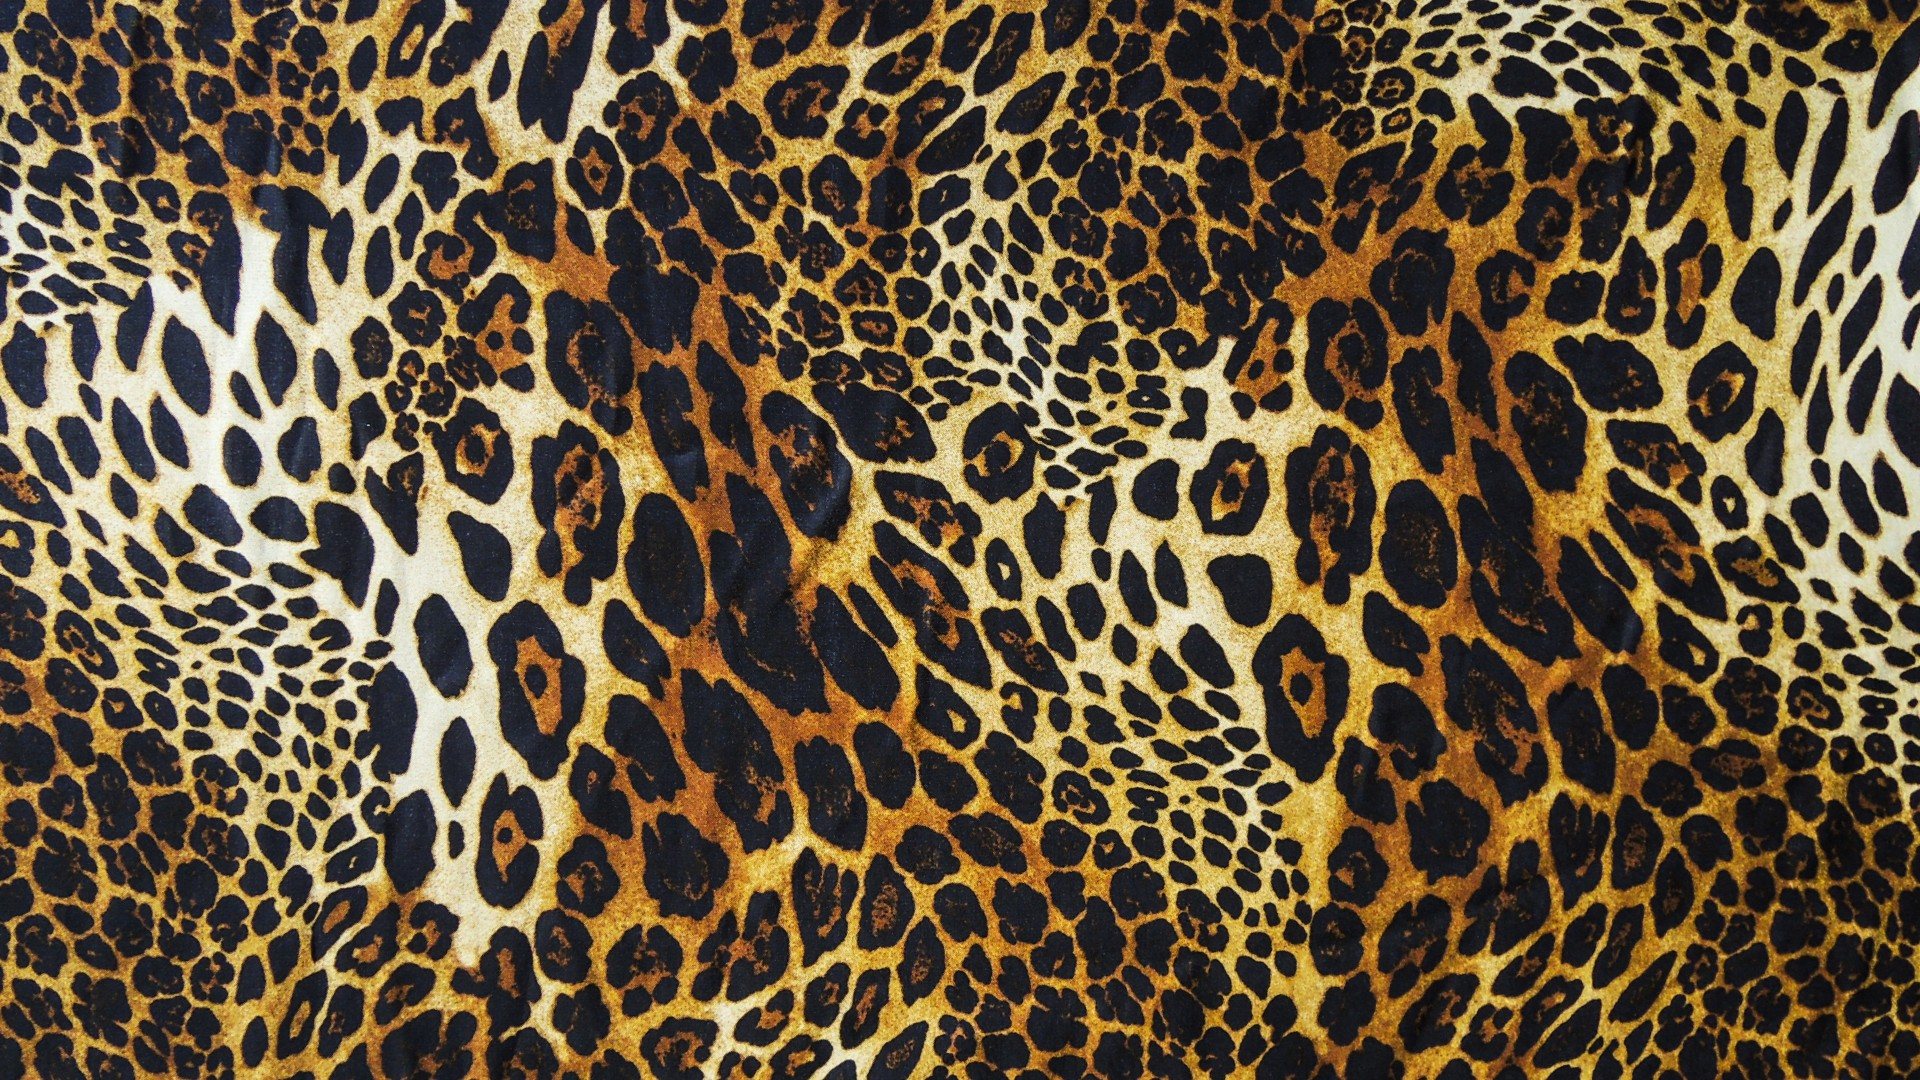 Leopard print wallpapers high quality download free for Printed wallpaper